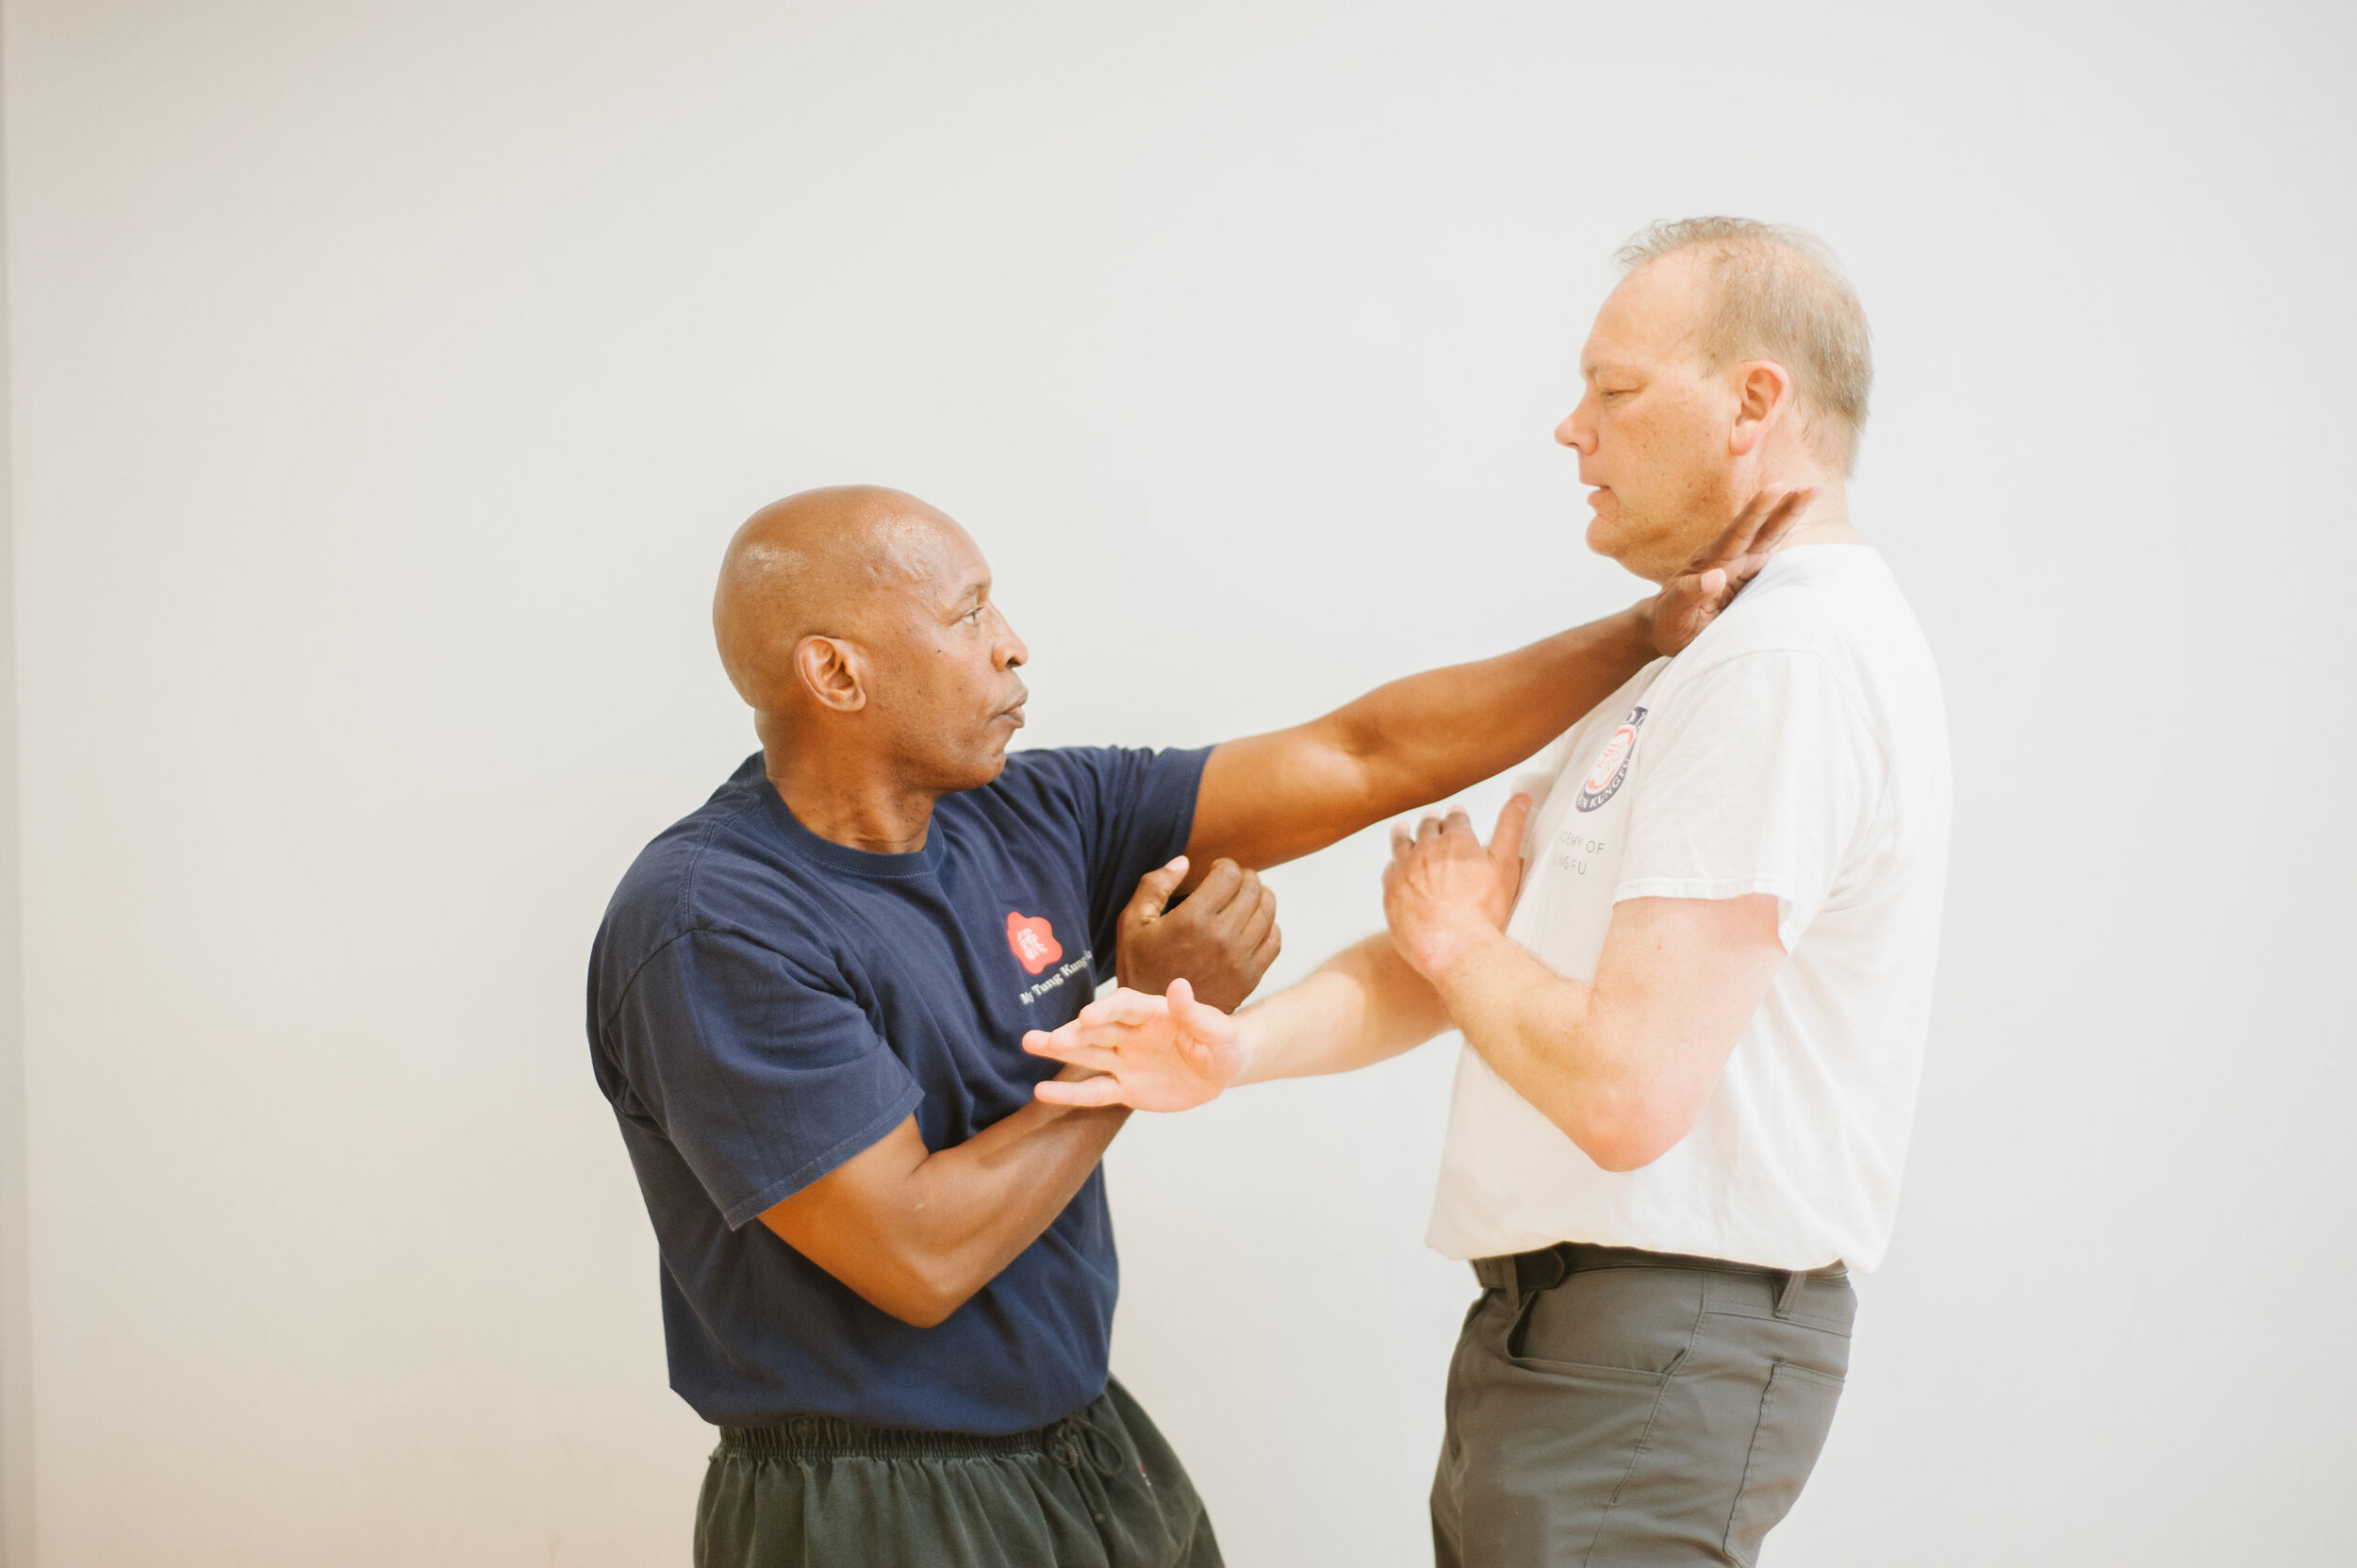 best for self defense - Why is Ving Tsun the best Martial Art for self defense? Surprisingly, most Martial Arts do not prepare you for real life self defense. Find out what make Ving Tsun different.